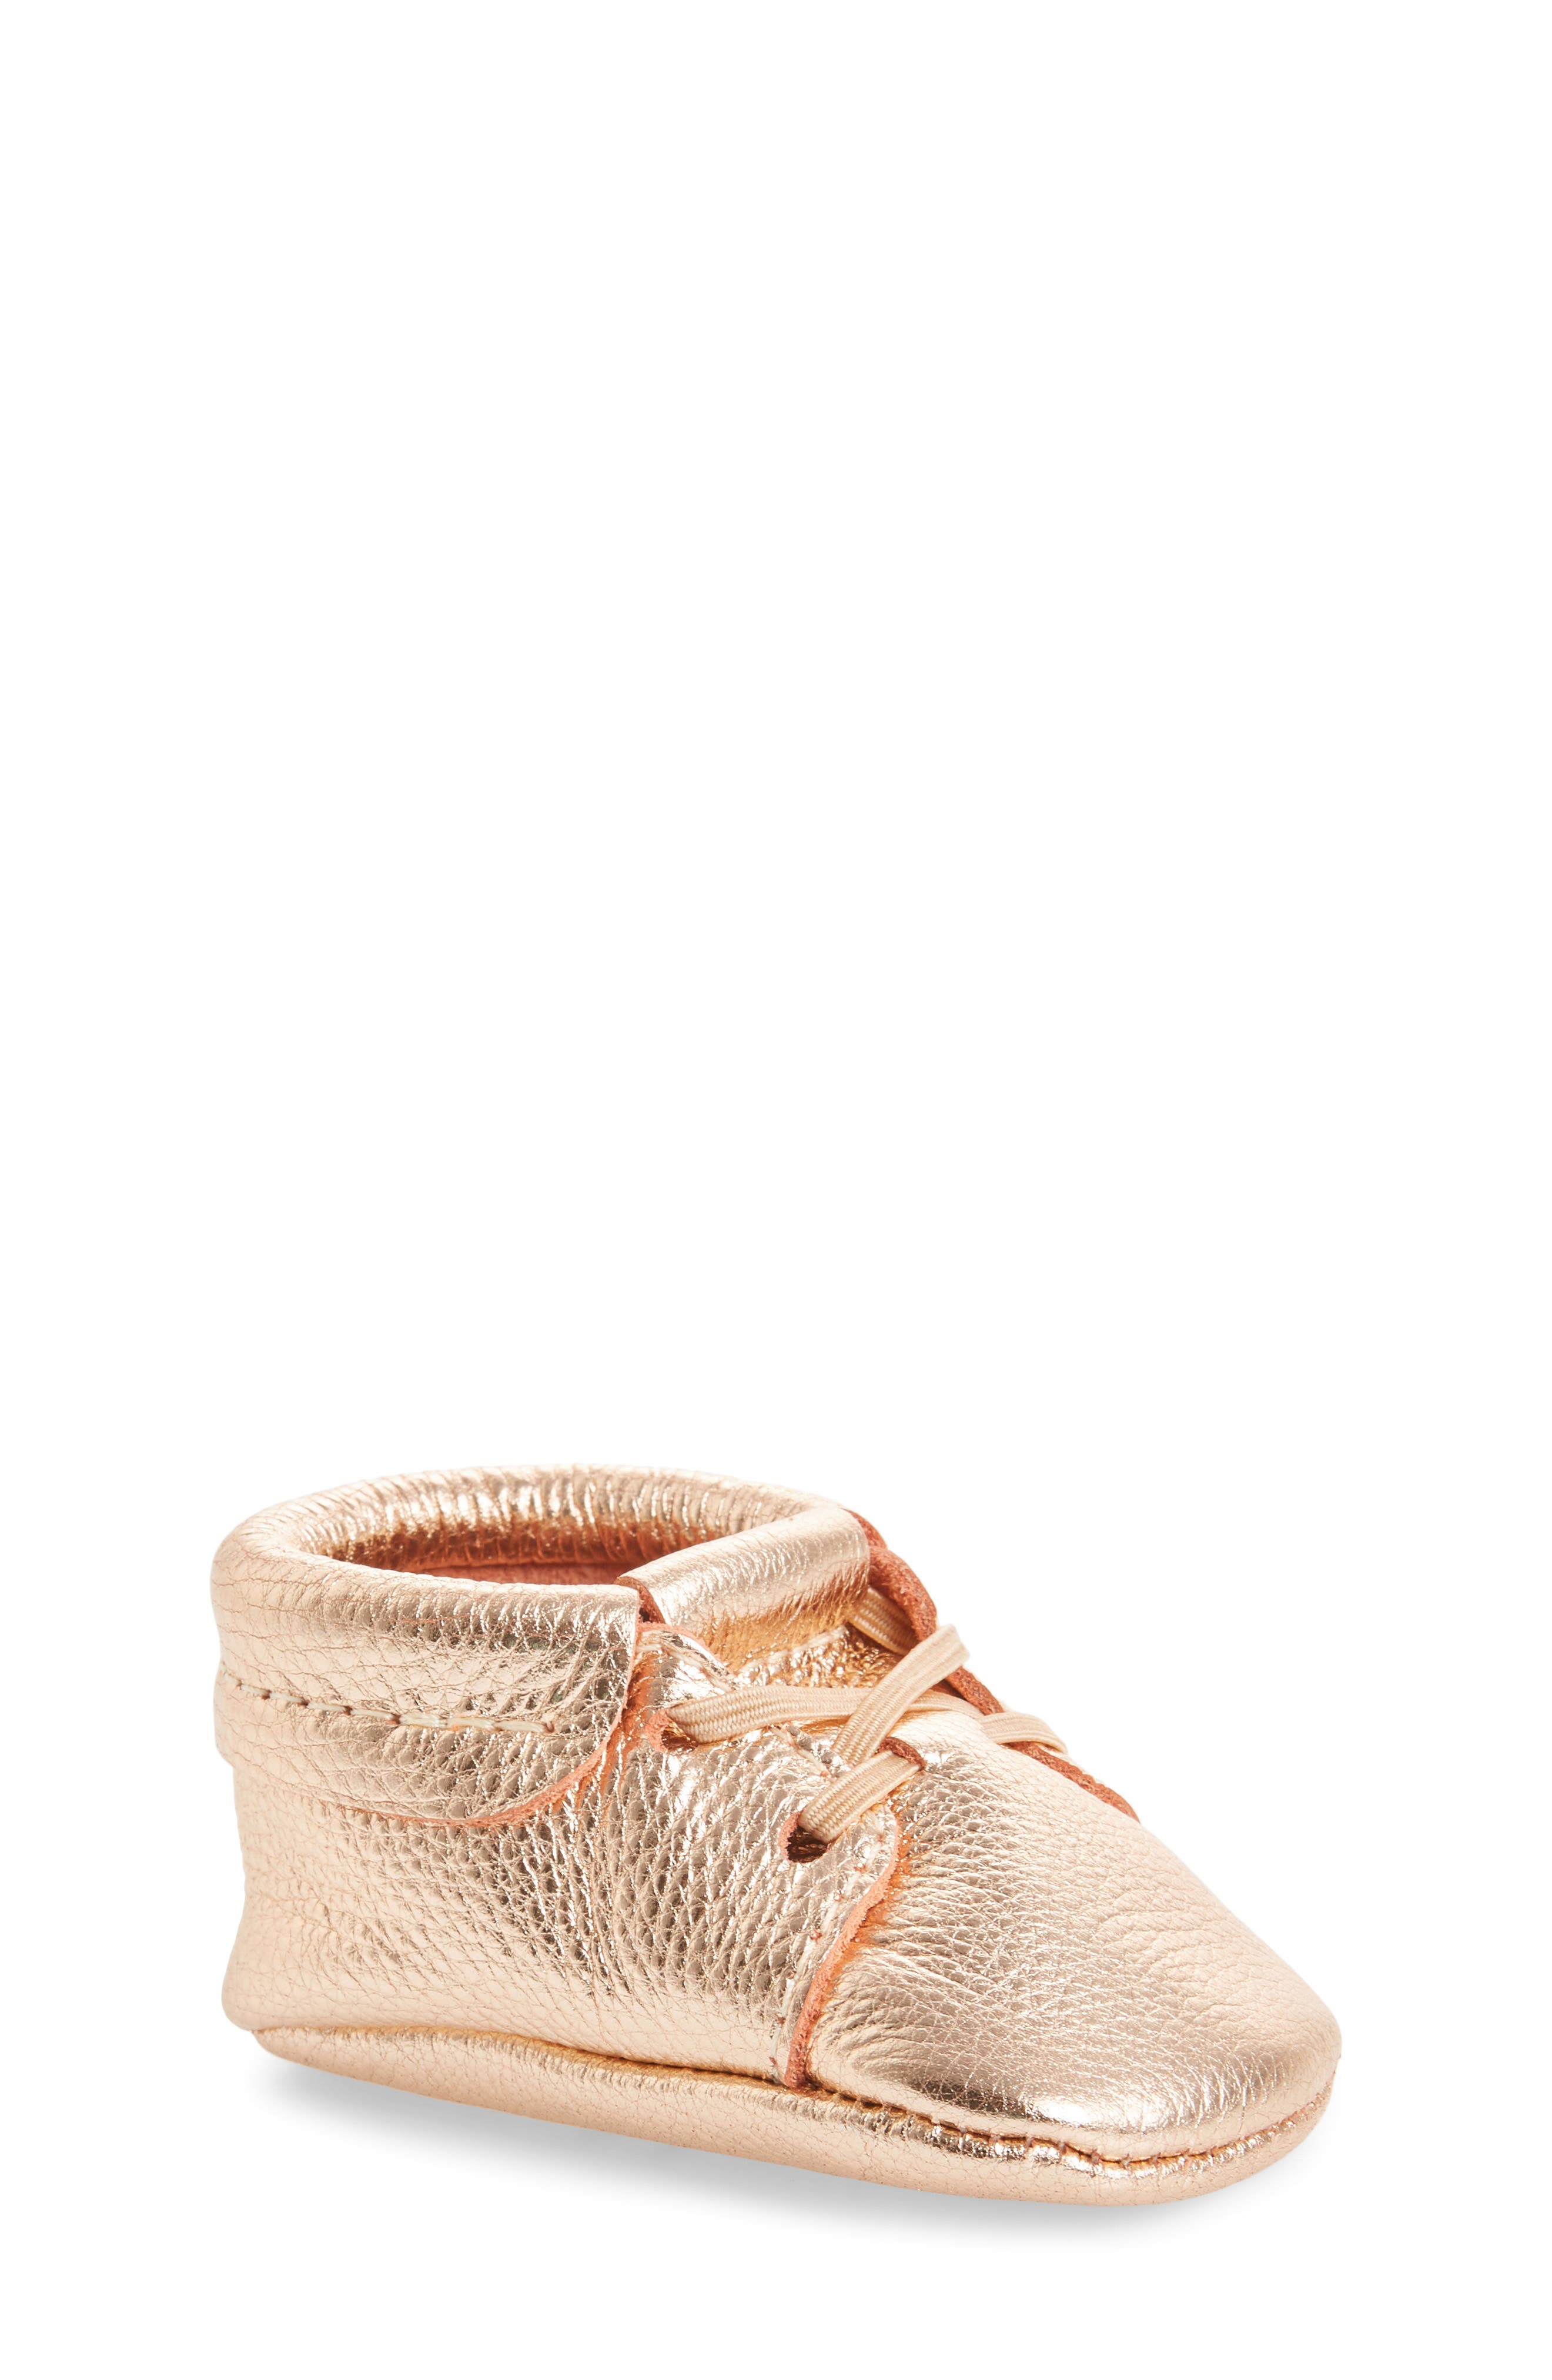 Oxford Crib Shoe,                         Main,                         color, ROSE GOLD LEATHER